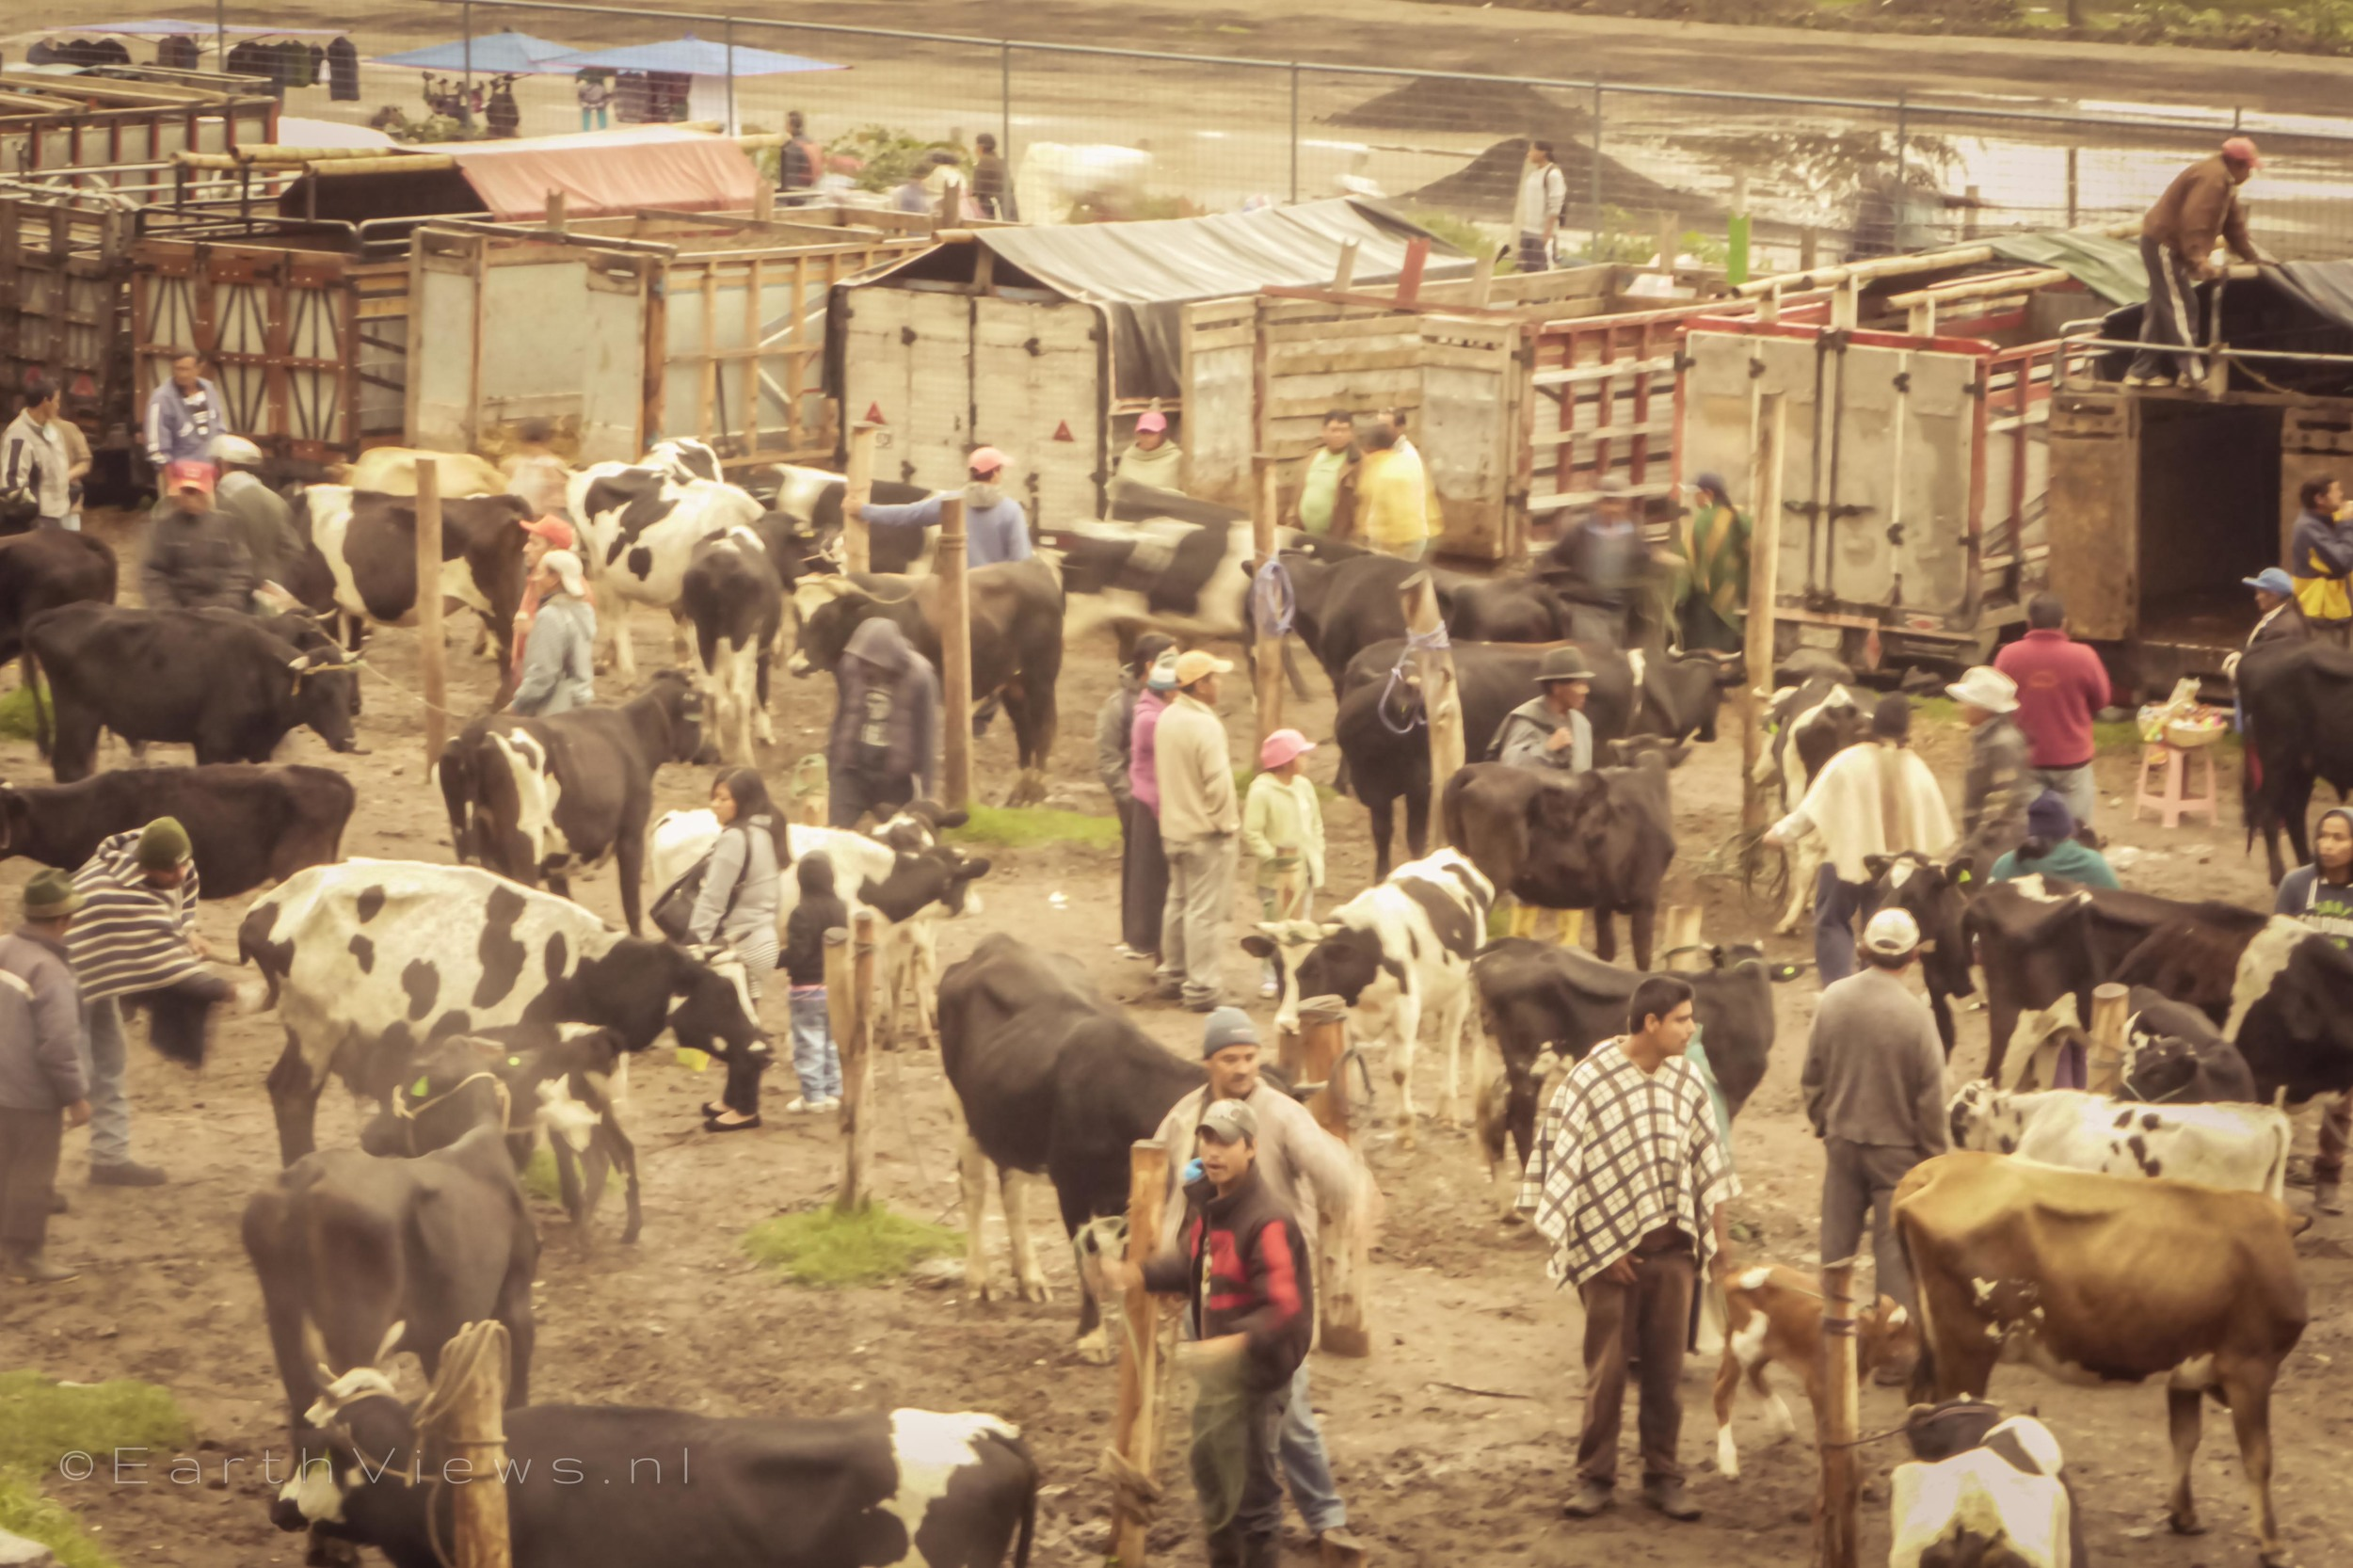 Overview on the animal market.